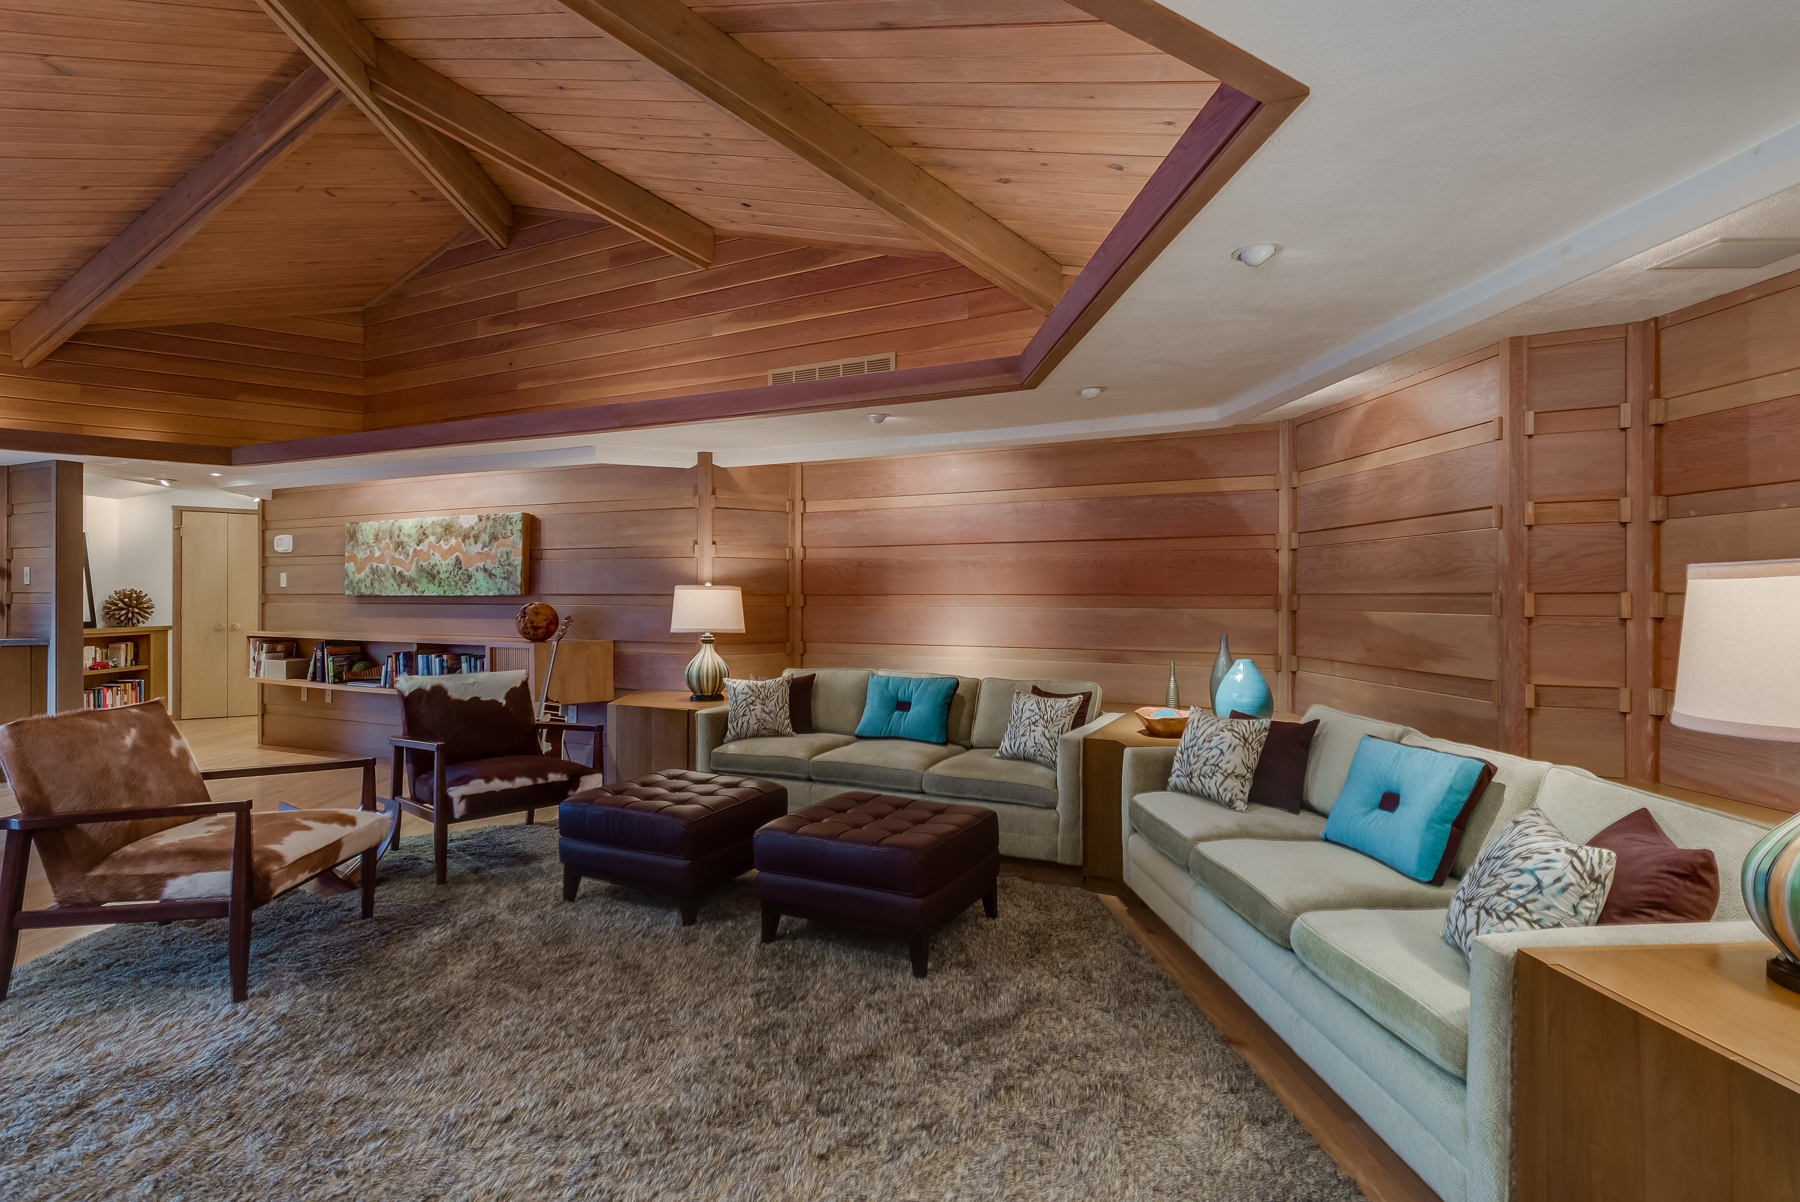 Photographs of a home on Sumac Lane in Ladue, Missouri for Dielmann Sotheby's International Realty agent Ted Wight